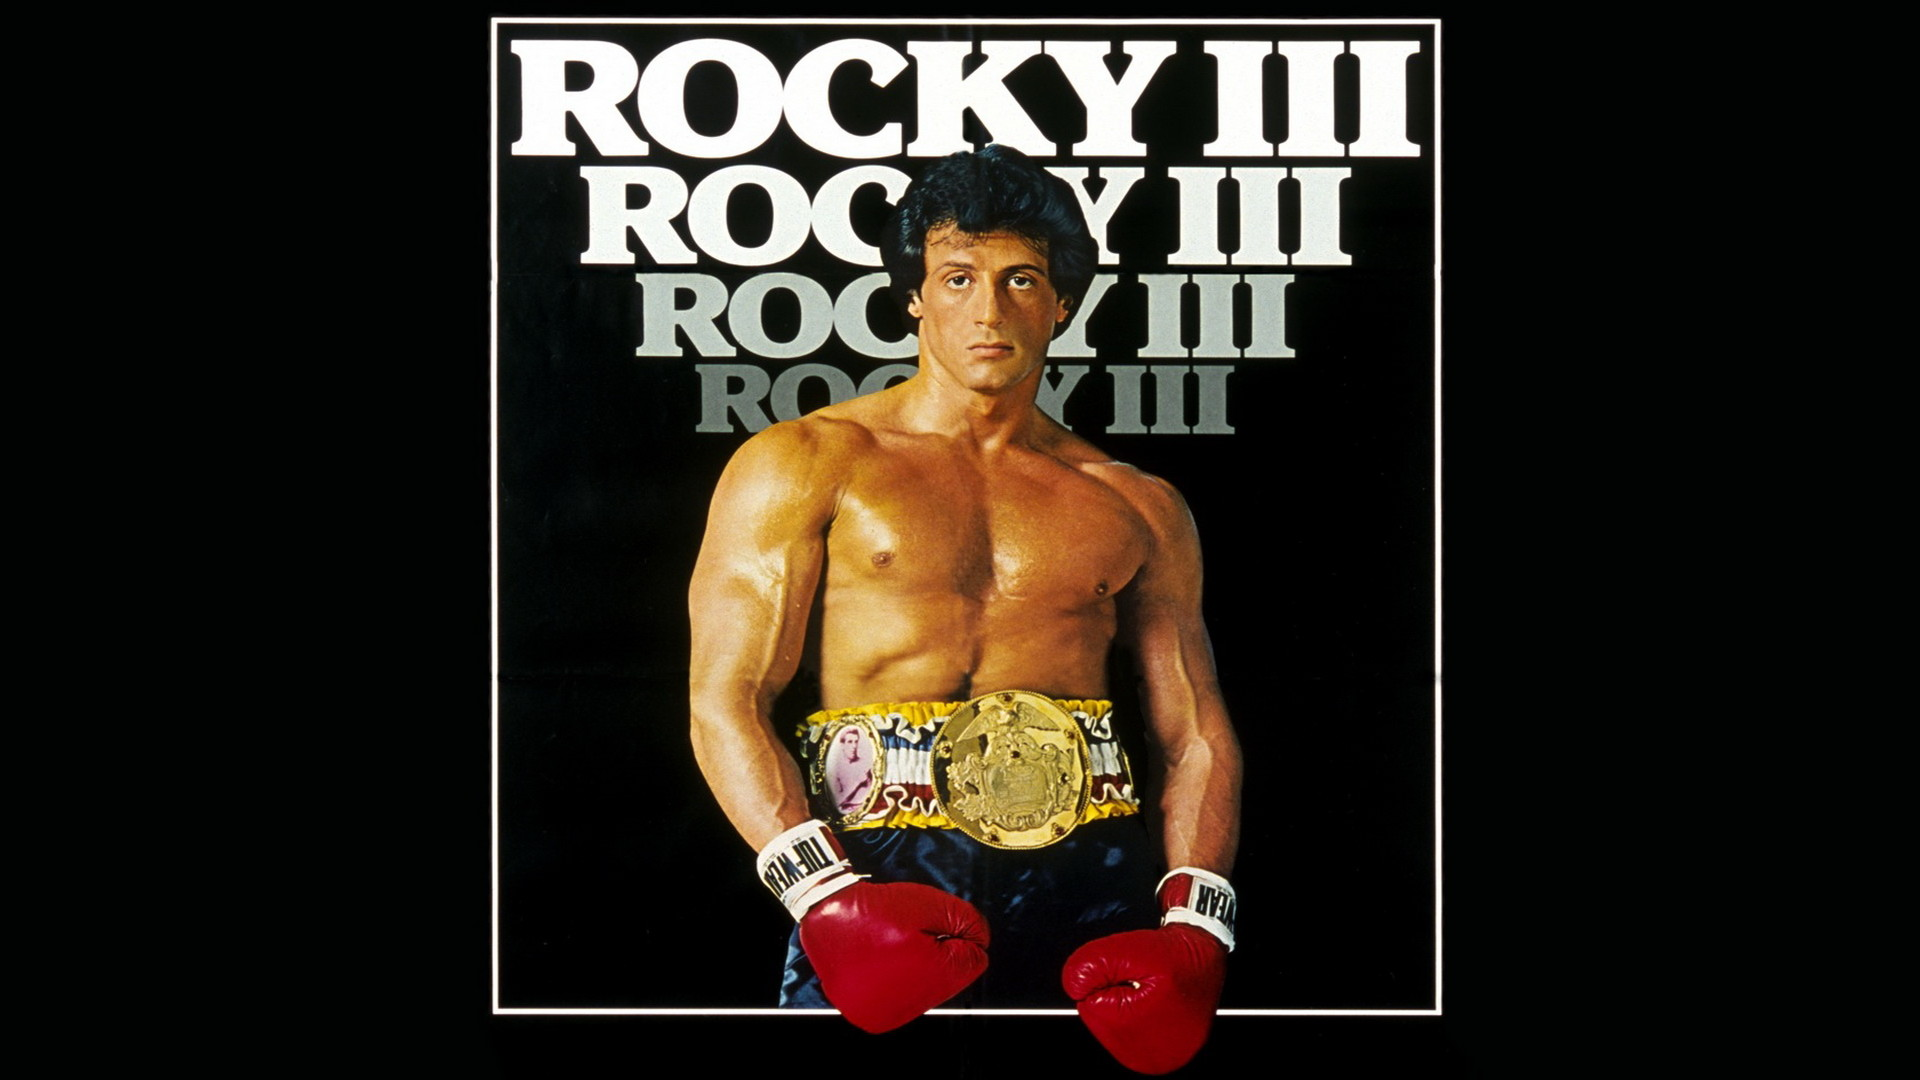 1920x1080 Movie - Rocky III Sylvester Stallone Wallpaper